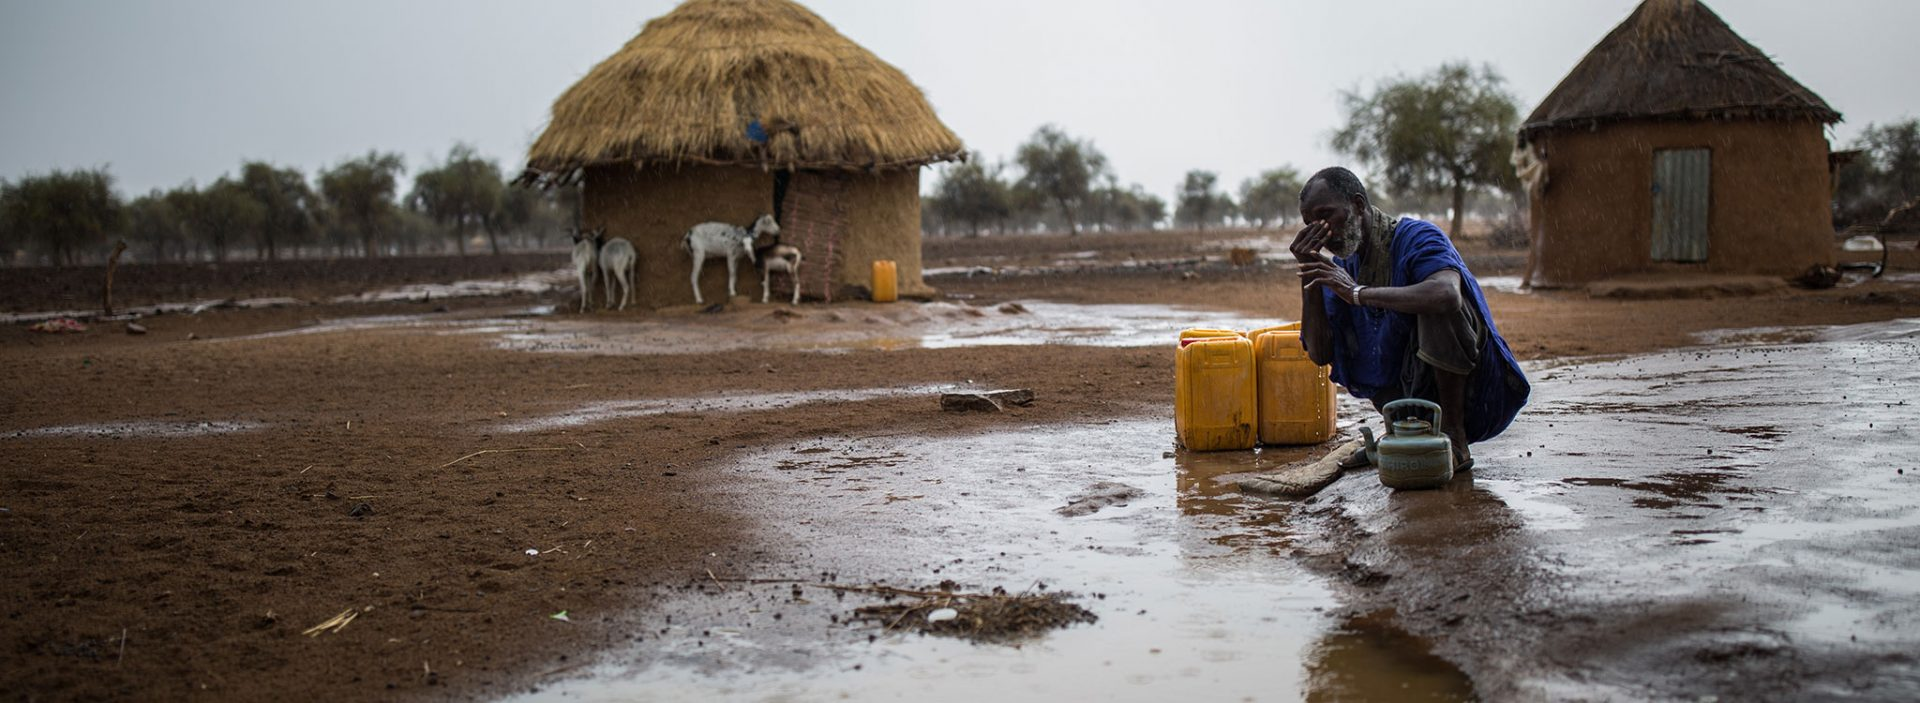 Mamadou prays as the first rains of the year arrive in Mauritania.